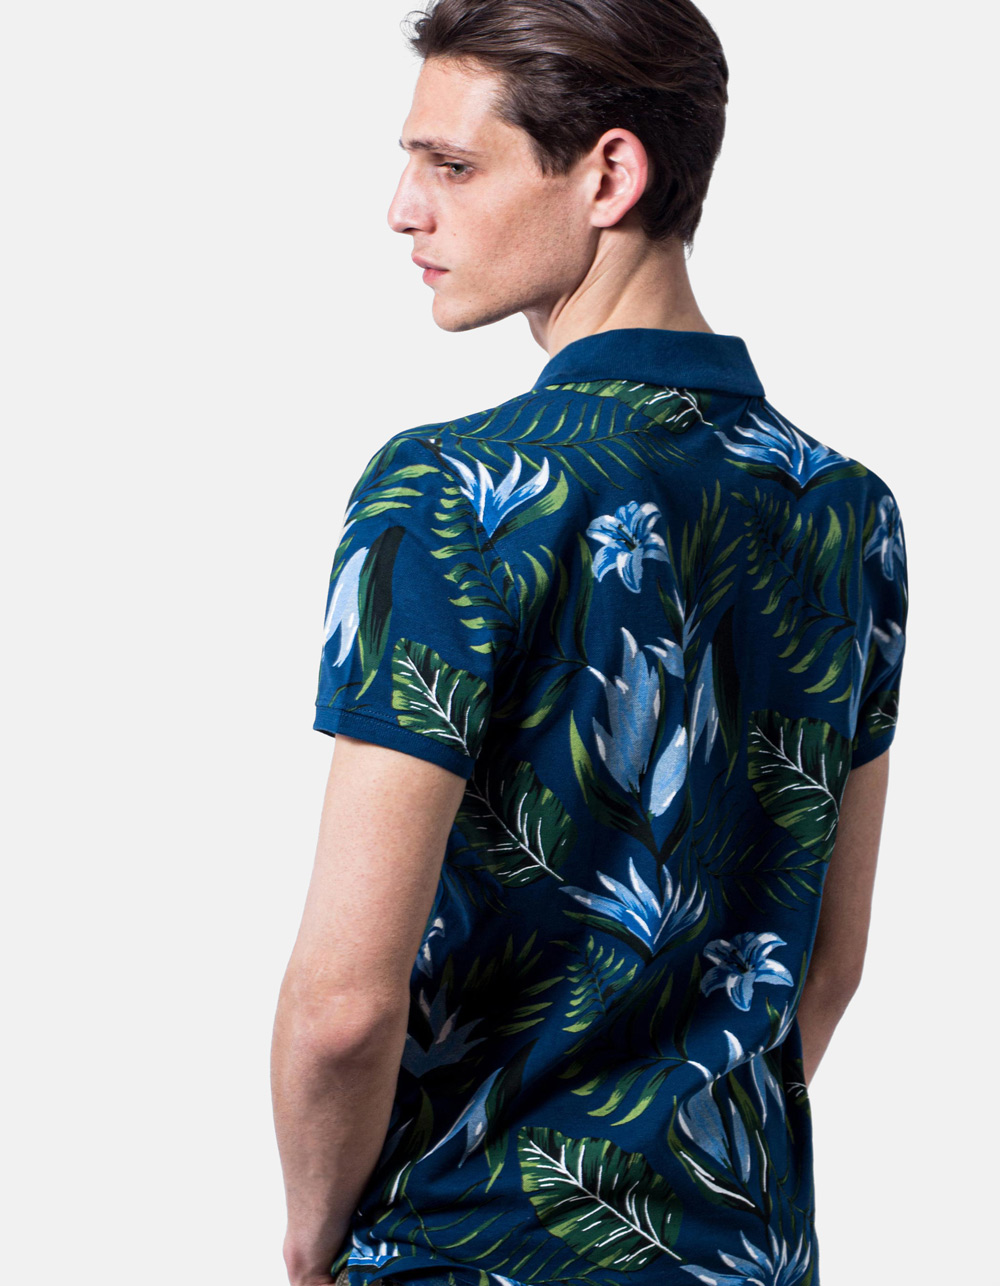 Polo piqué print wild - Backside